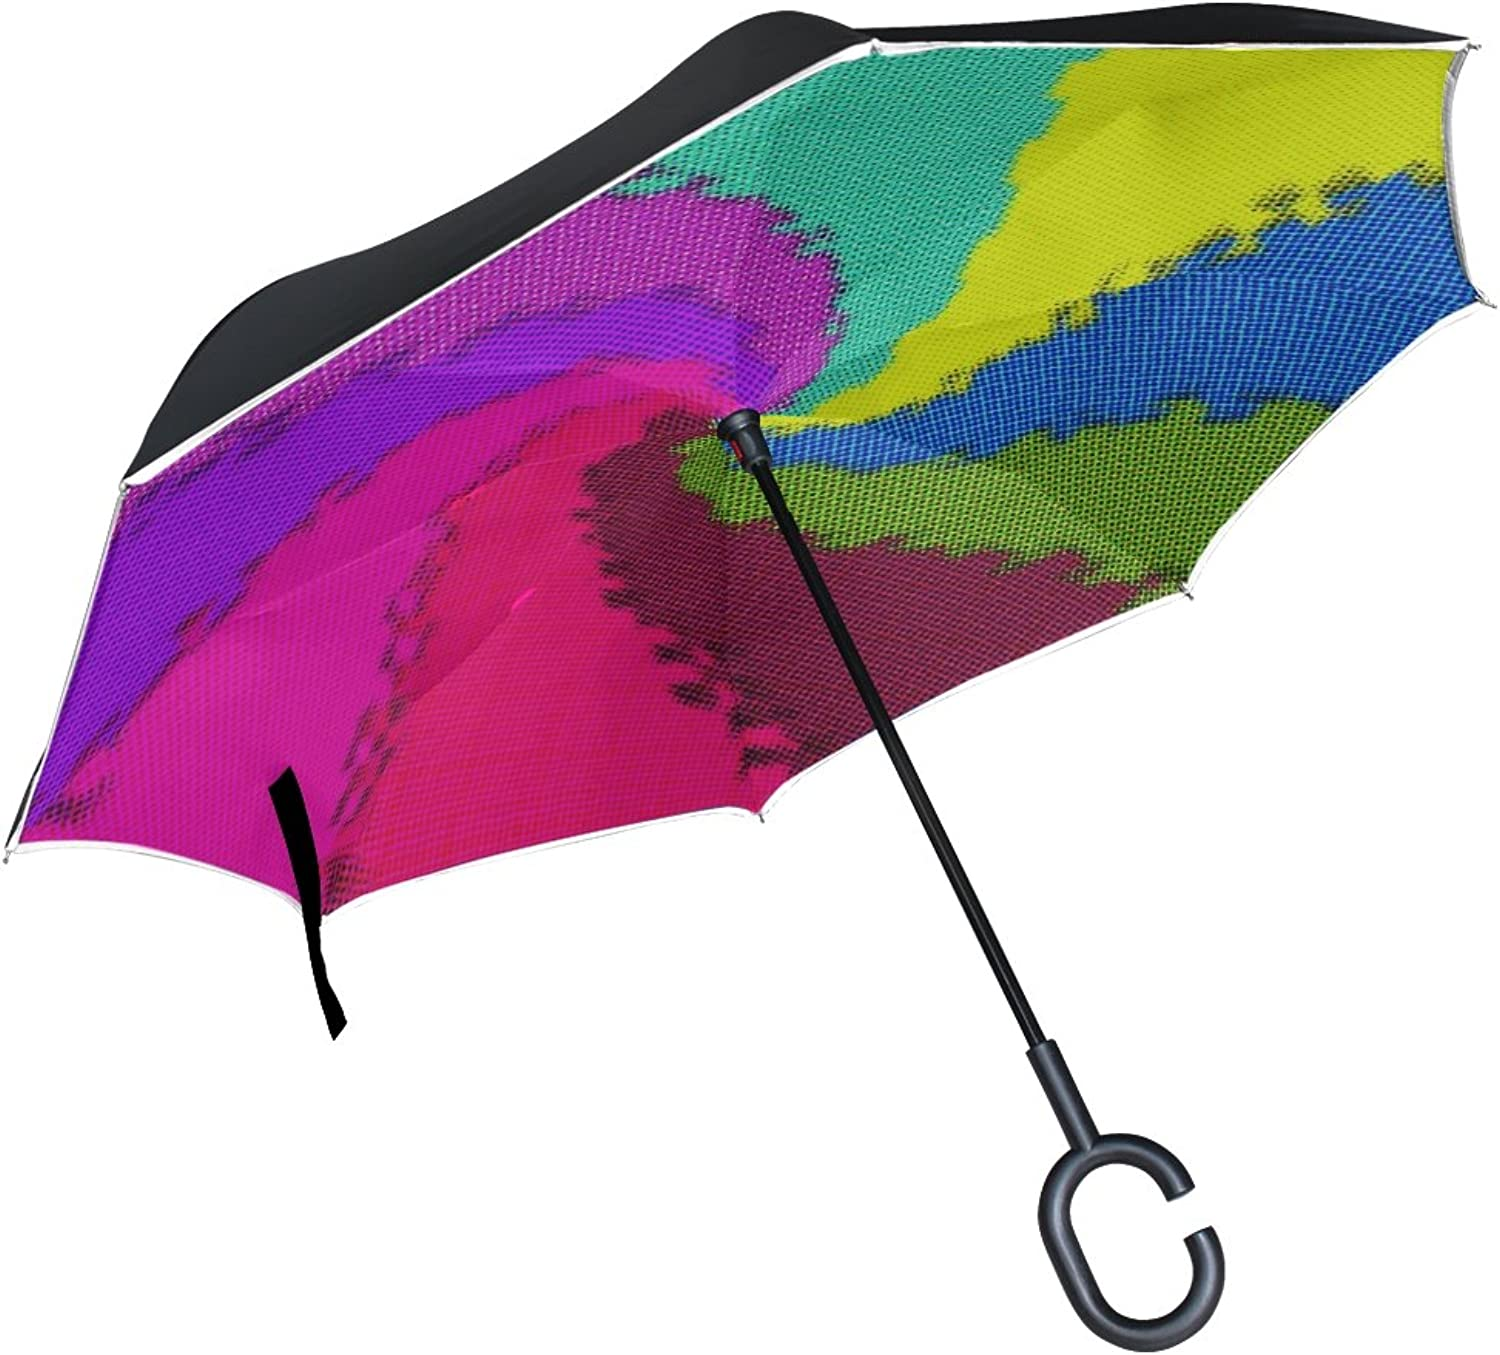 Double Layer Ingreened Art Abstract Pattern color Creativity Artistic Umbrellas Reverse Folding Umbrella Windproof Uv Predection Big Straight Umbrella for Car Rain Outdoor with CShaped Handle